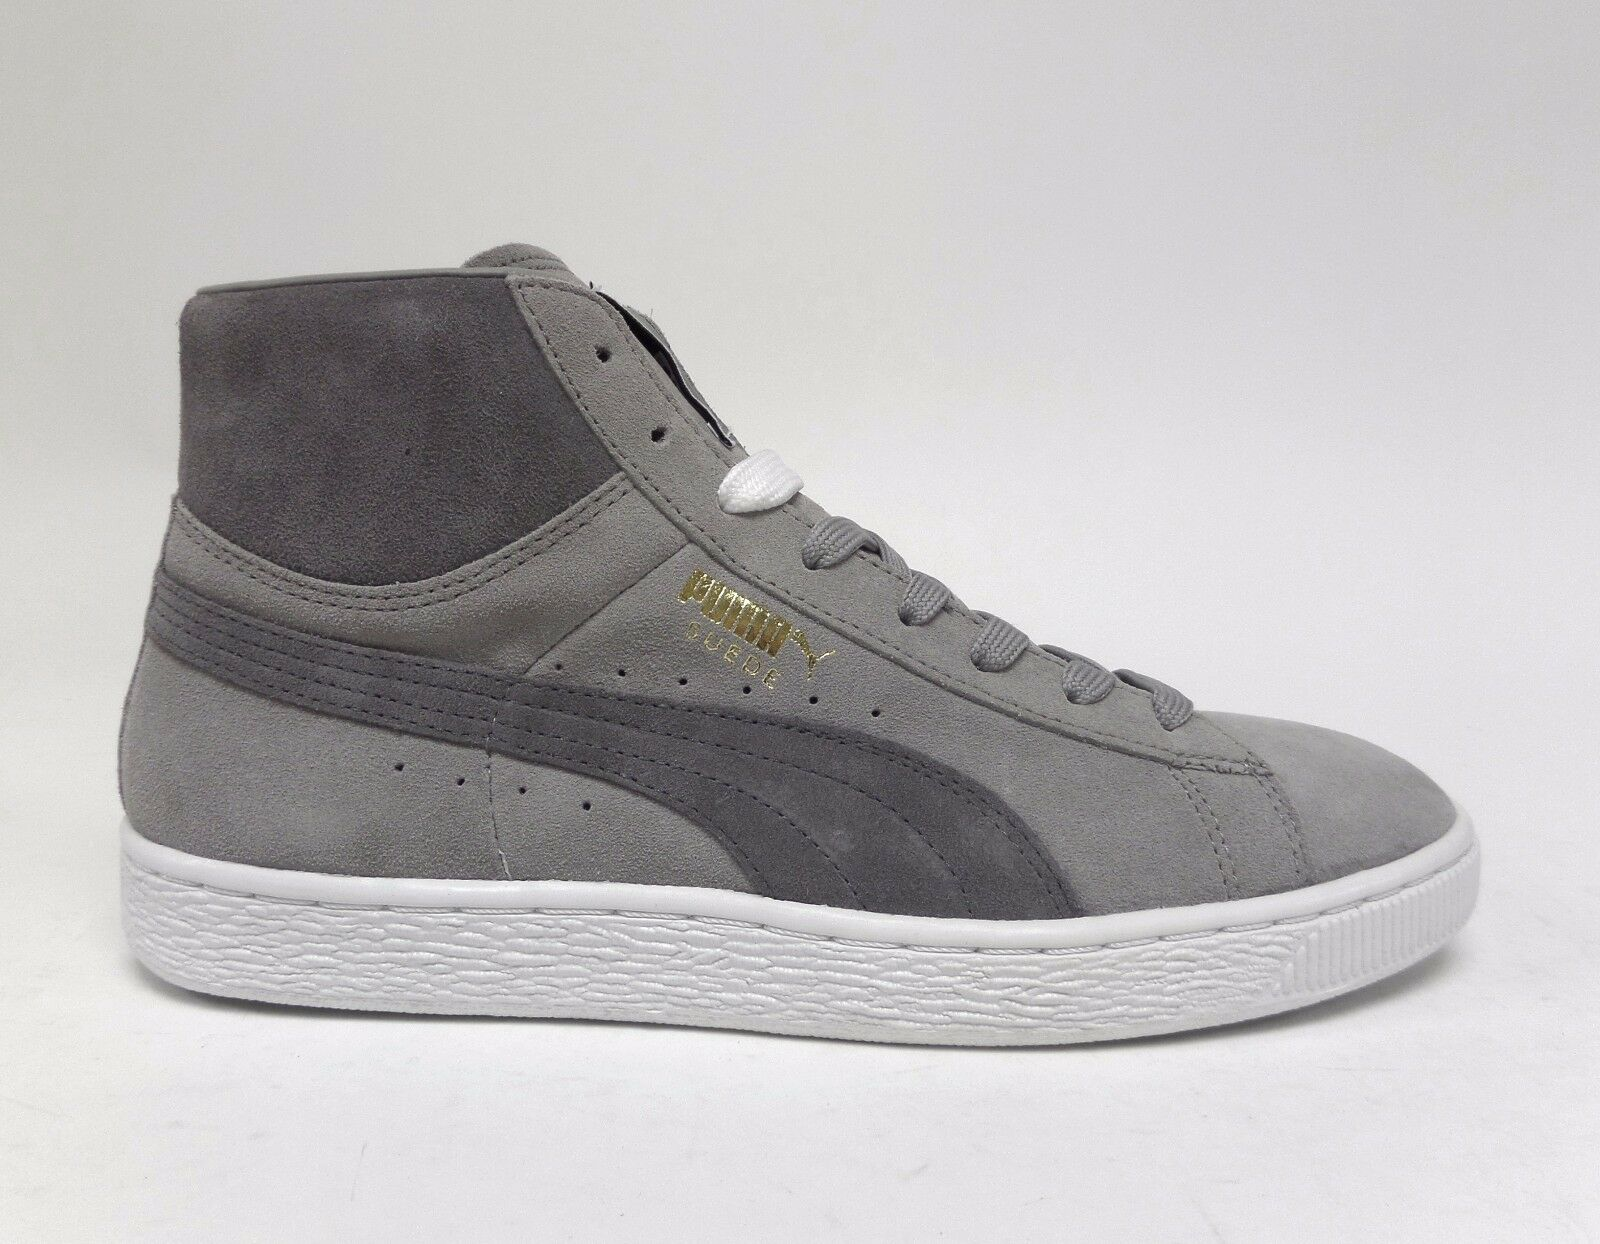 caaa59f8fe638 Puma Men s SUEDE MID CLASSIC+ shoes Drizzle Drizzle Drizzle Steel Grey  White 356340-16 a